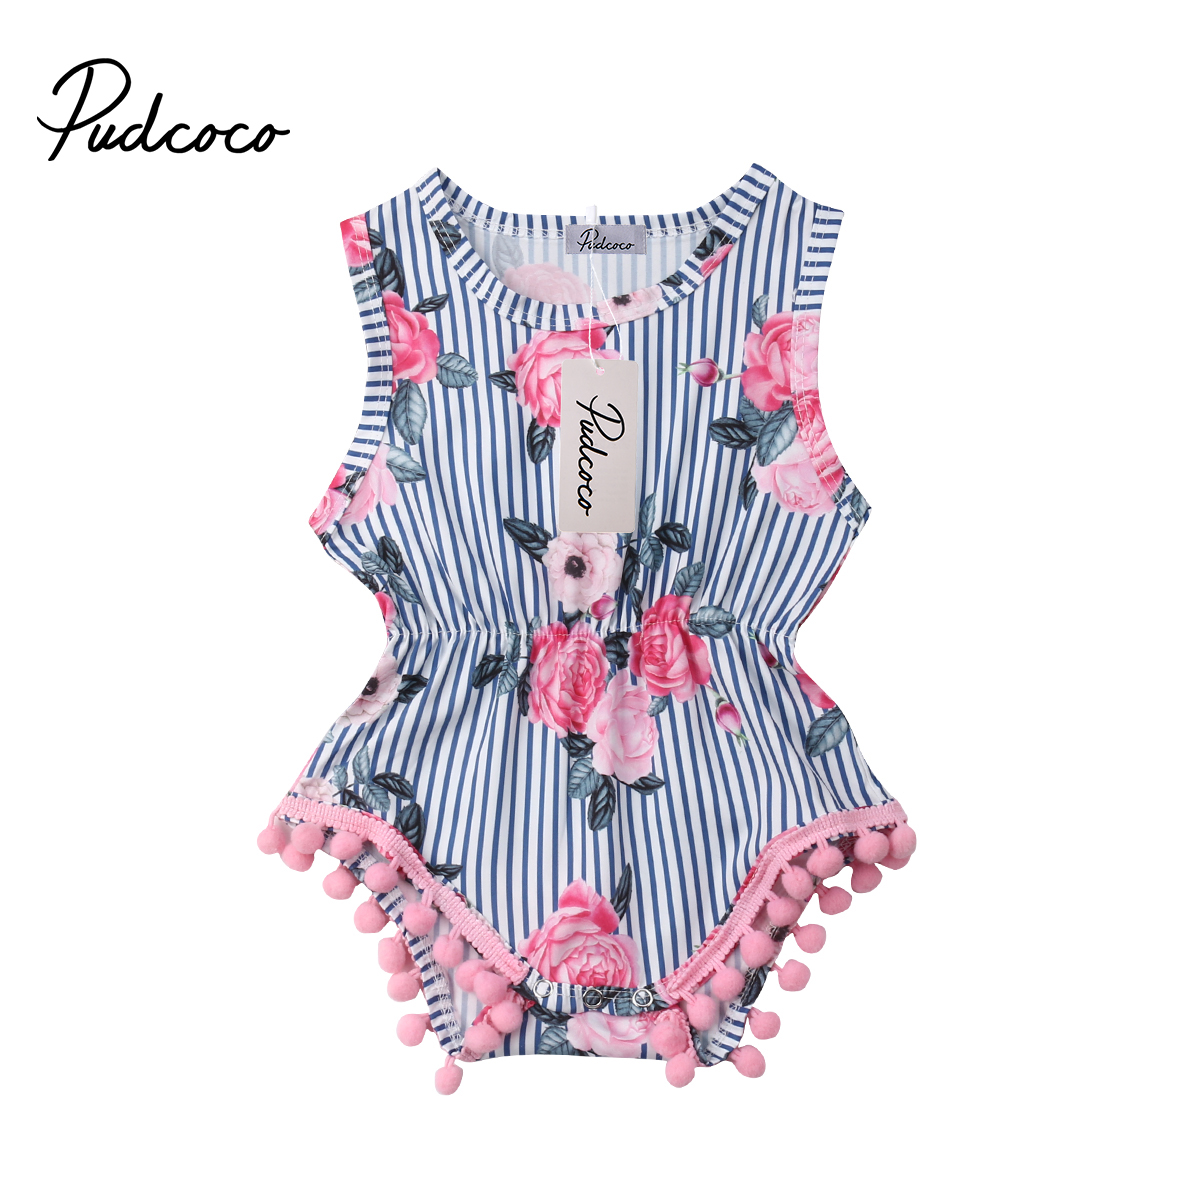 pudcoco 2019 New Baby Girl Tassel   Romper   Summer Infant Baby Girls Floral Pom Pom   Romper   Jumpsuit Sun suit Outfits 0-18 Months